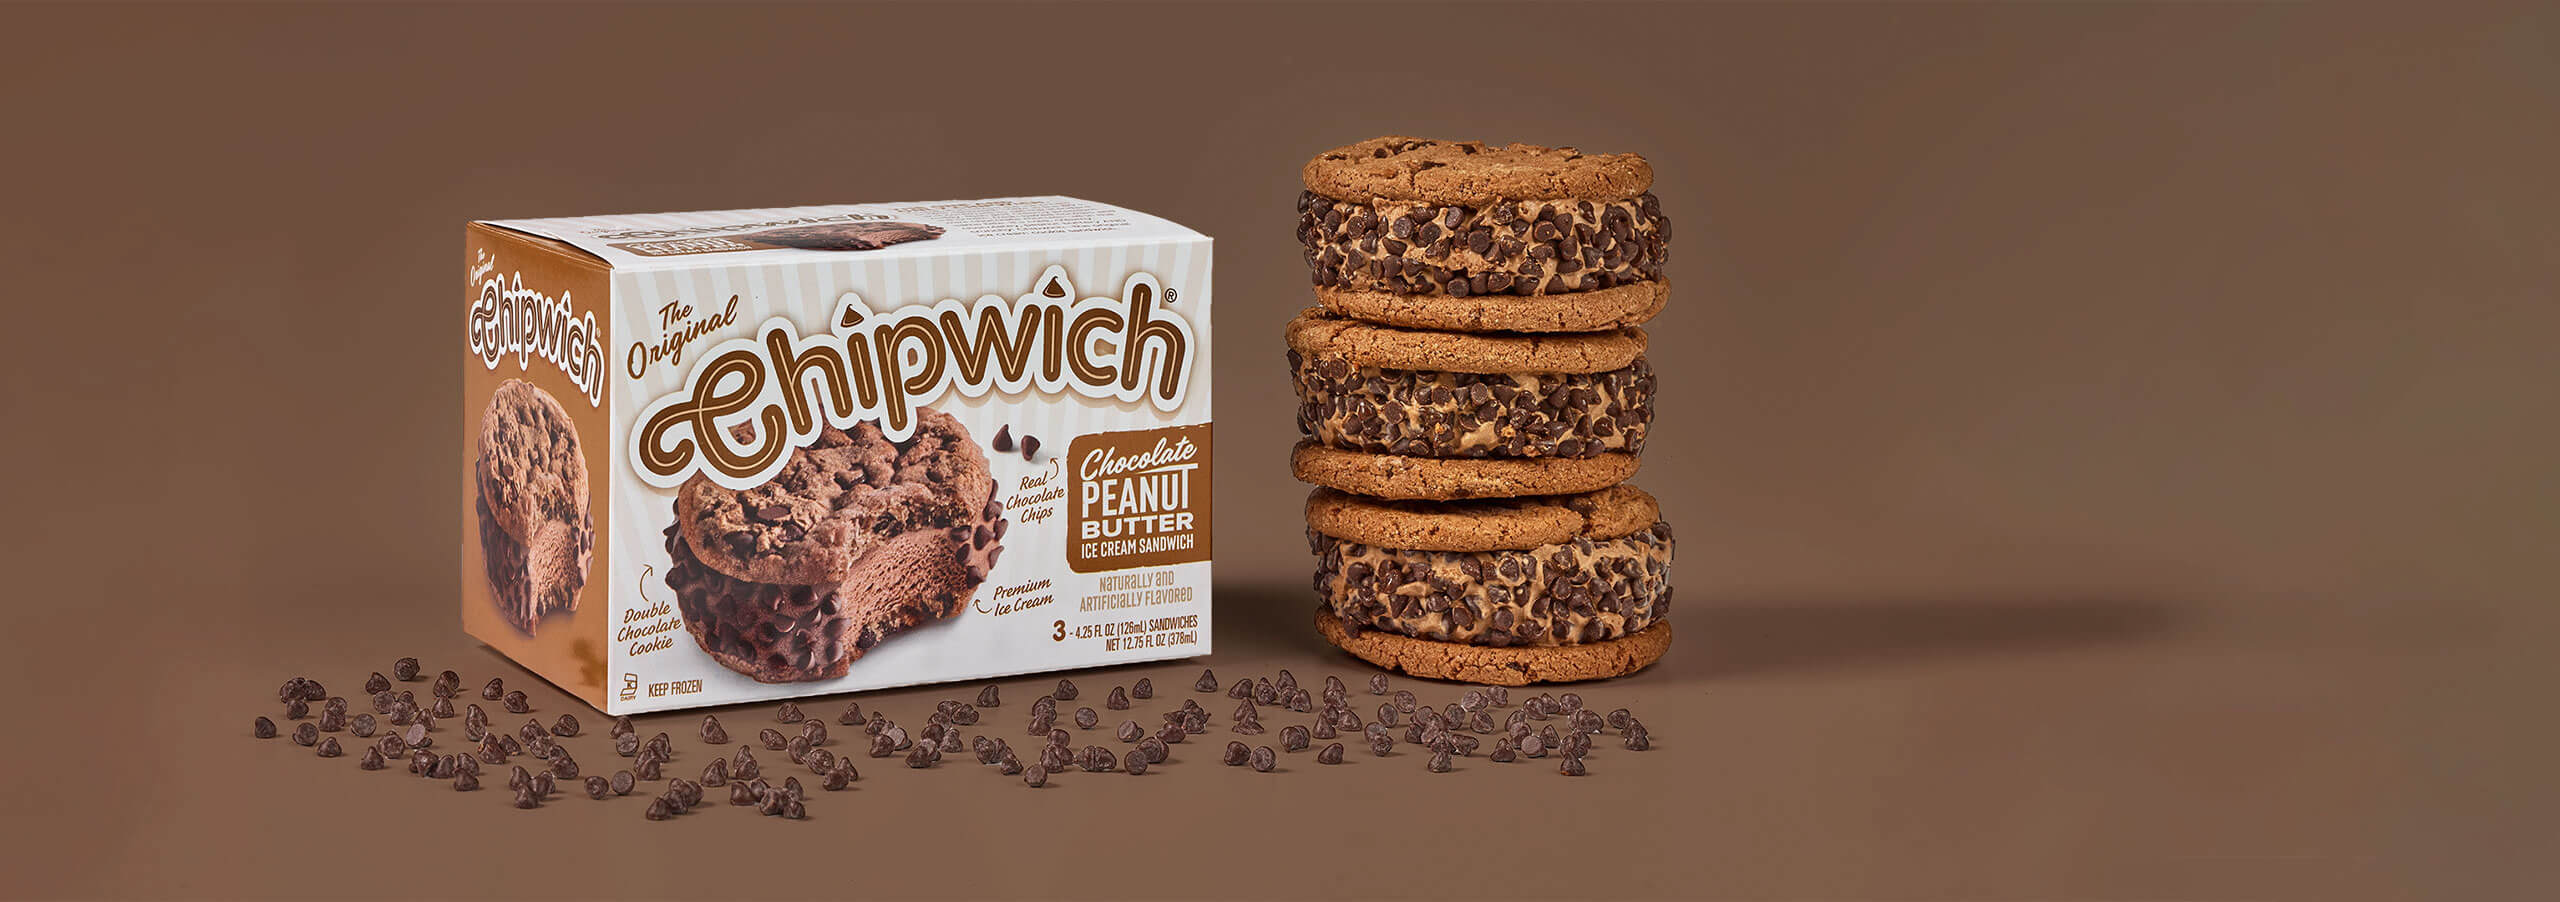 Chipwich-Ice-Cream-Sandwich-Chocolate-Peanut-Butter